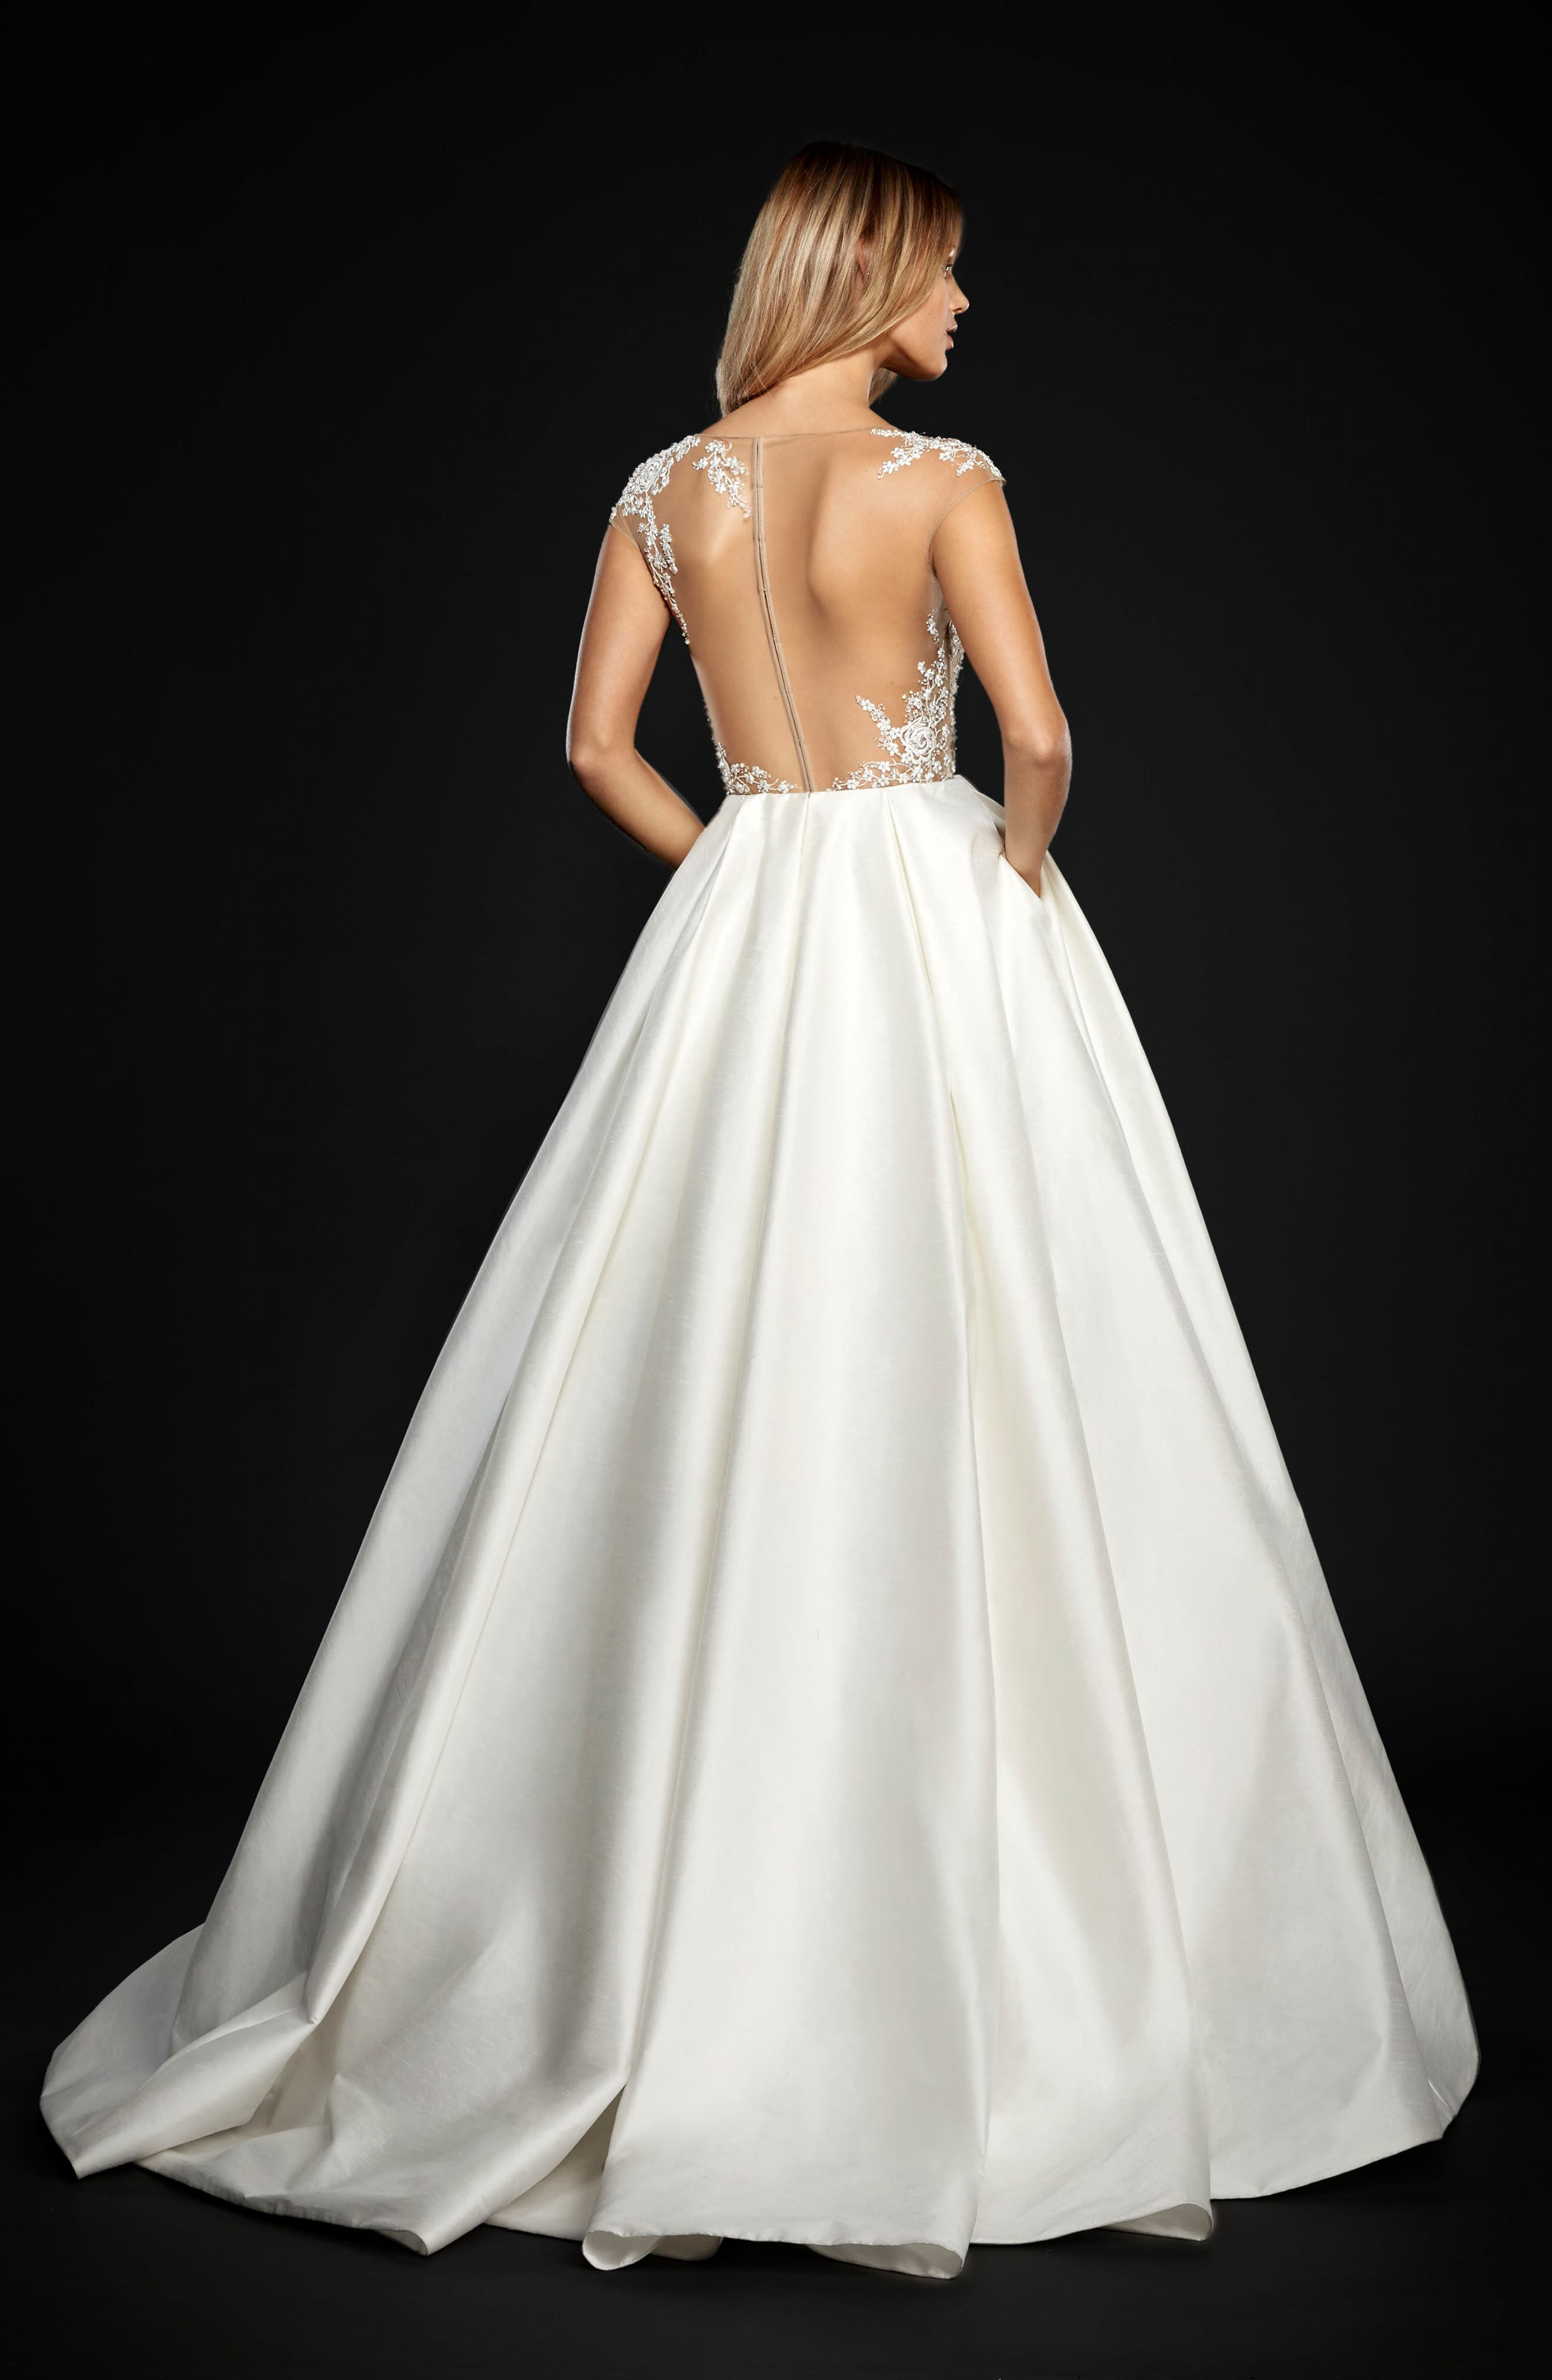 Chandler Floral Embroidered Illusion Ballgown,                             Alternate thumbnail 2, color,                             IVORY